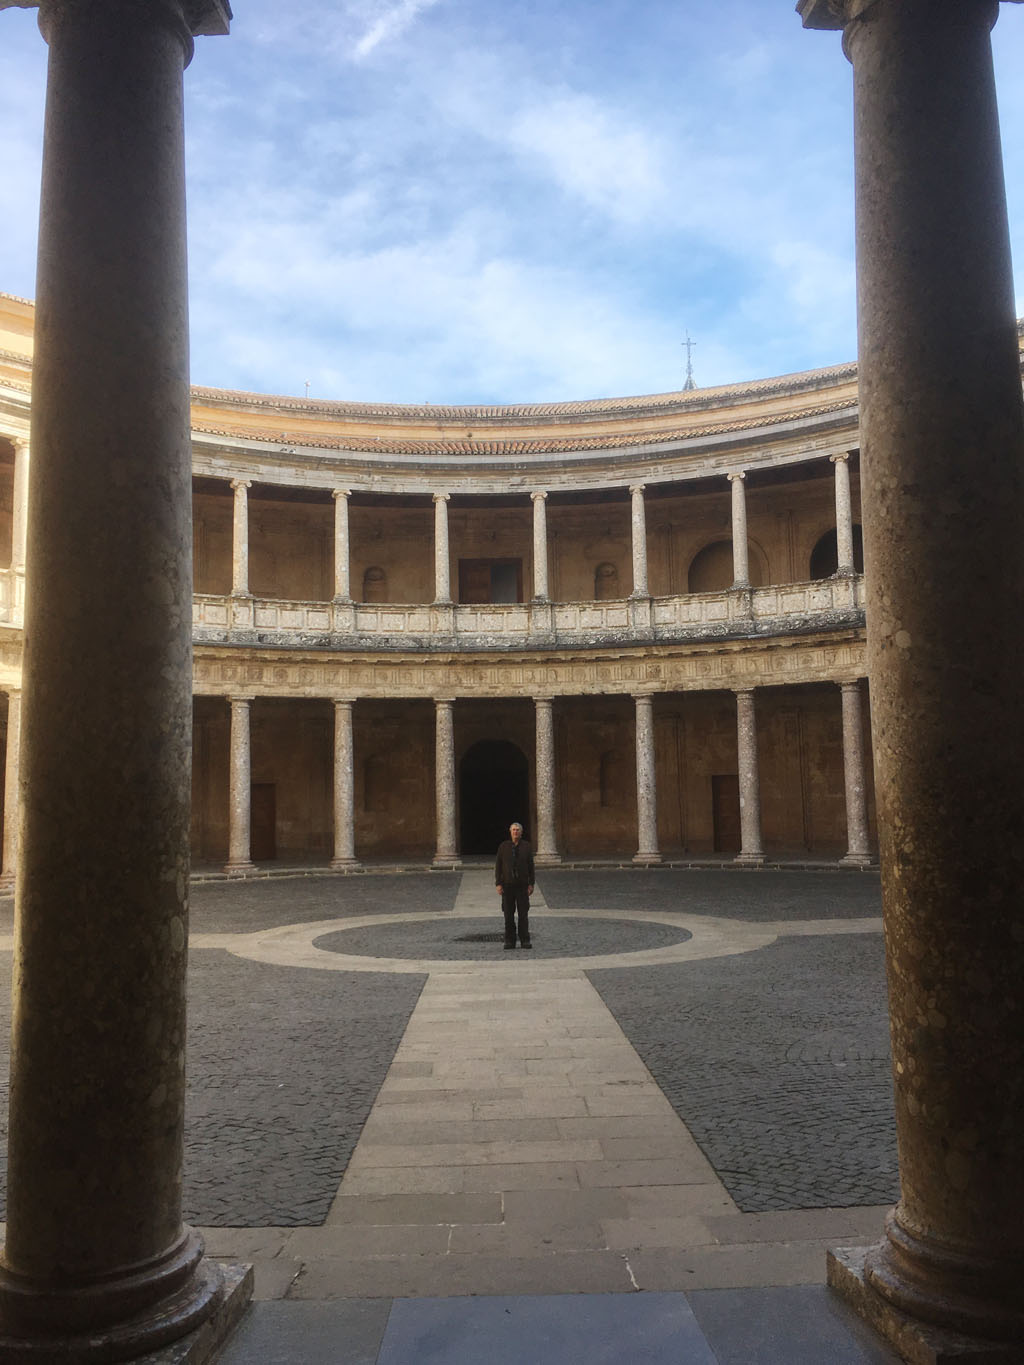 Roger Hooten visiting the Alhambra Palace in Granada